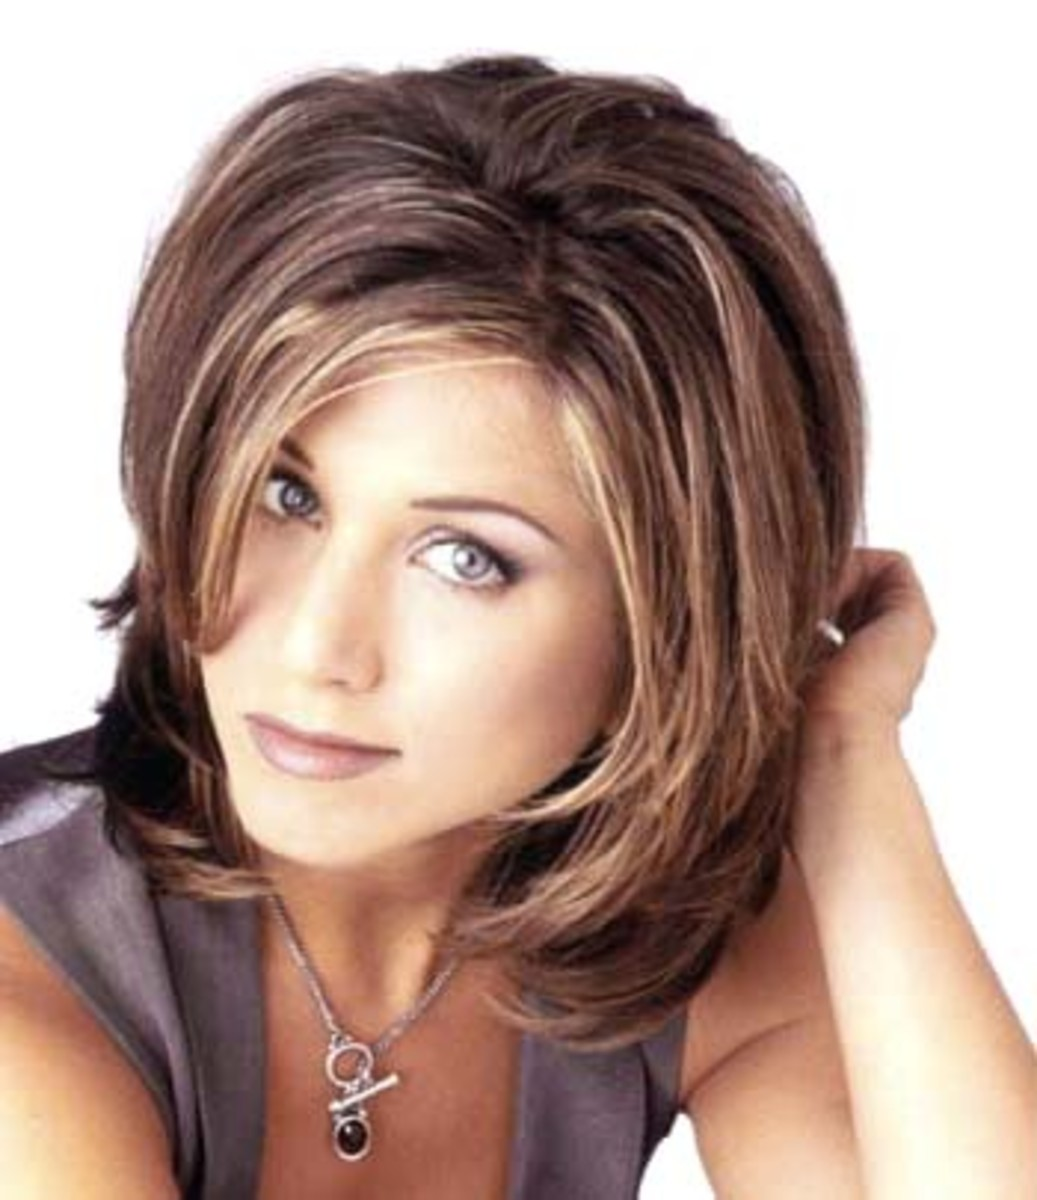 Jennifer Aniston Hairstyles and Haircuts with Short and Long Hair Pictures